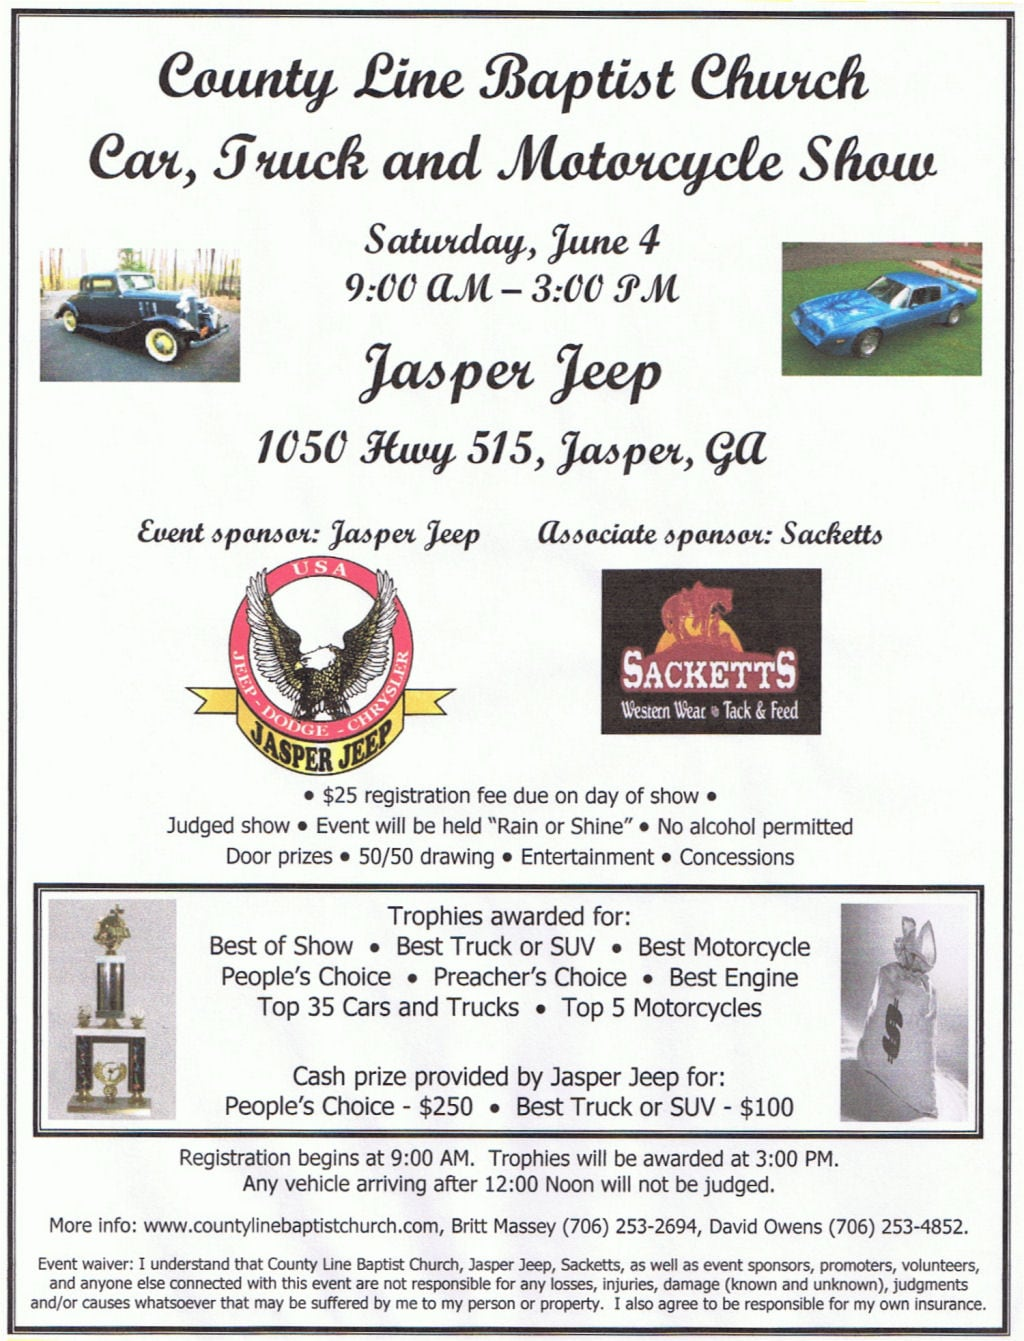 Jasper Jeep Car Show New Chrysler Dodge Jeep RAM Dealer Near - Any car shows near me